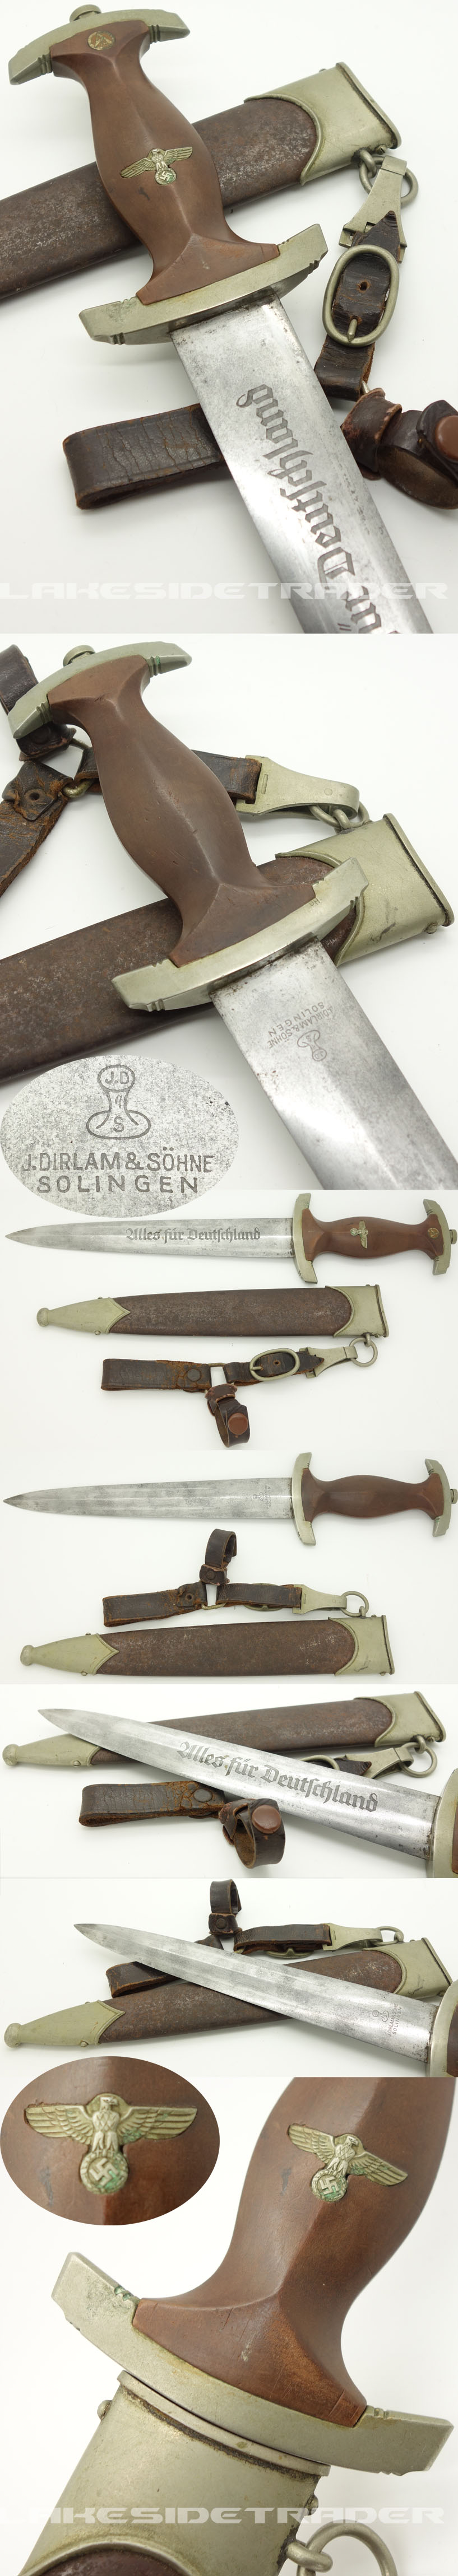 Early SA Dagger by J. Dirlam & Söhne